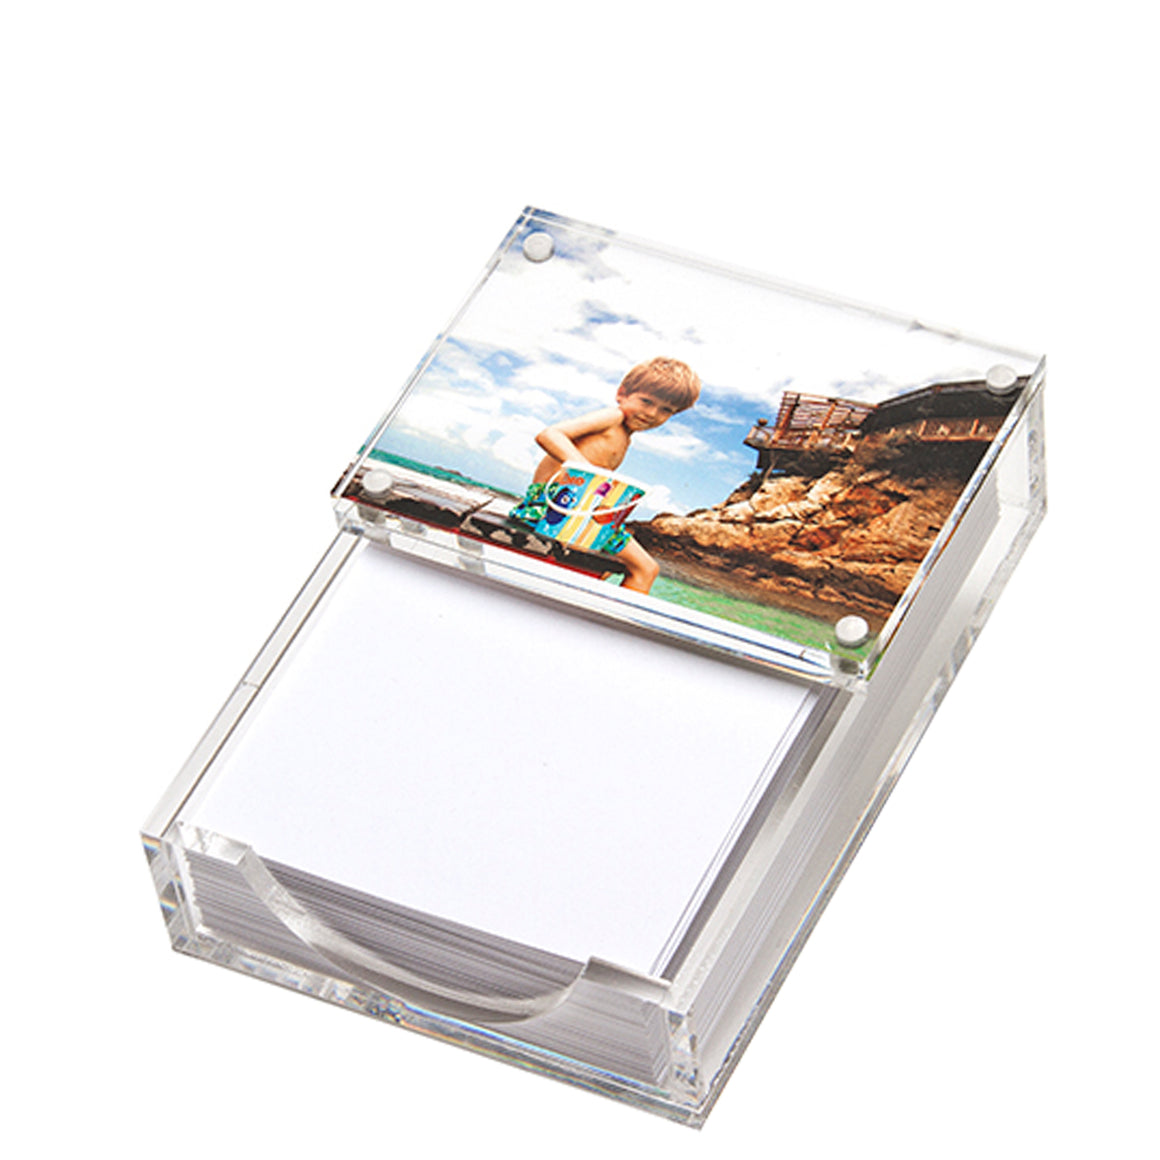 Paper holder - clear